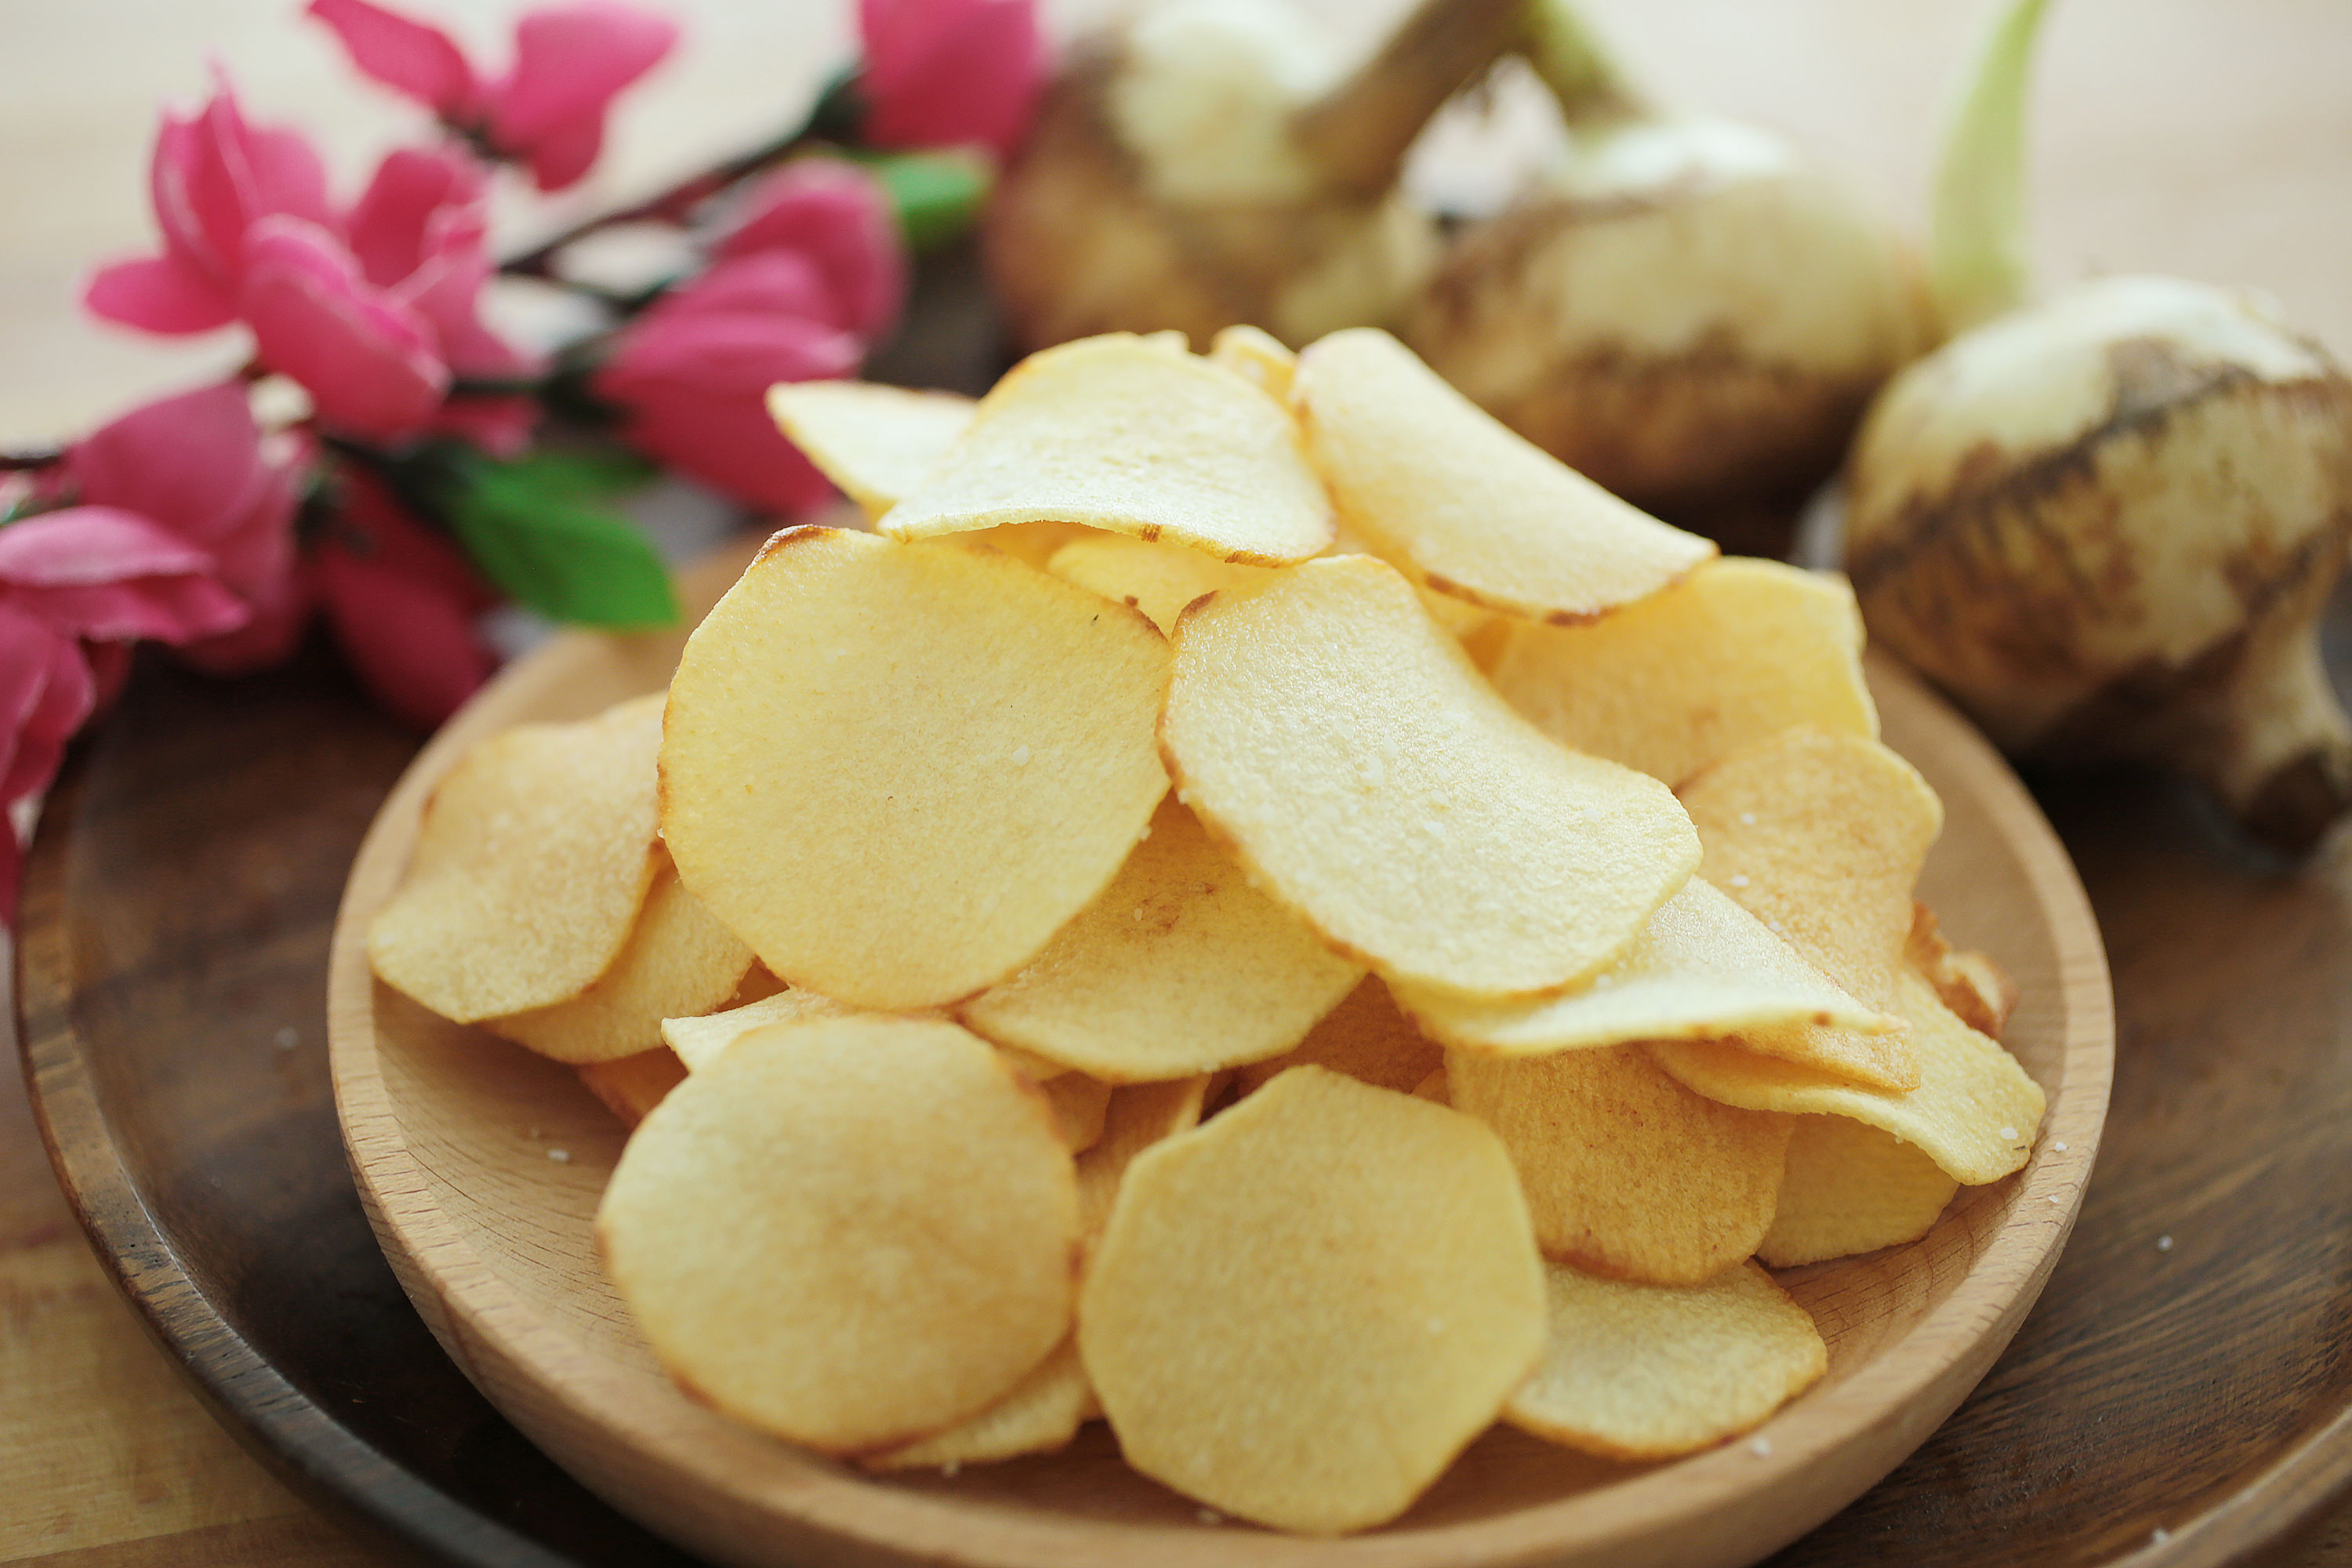 arrowhead-chips